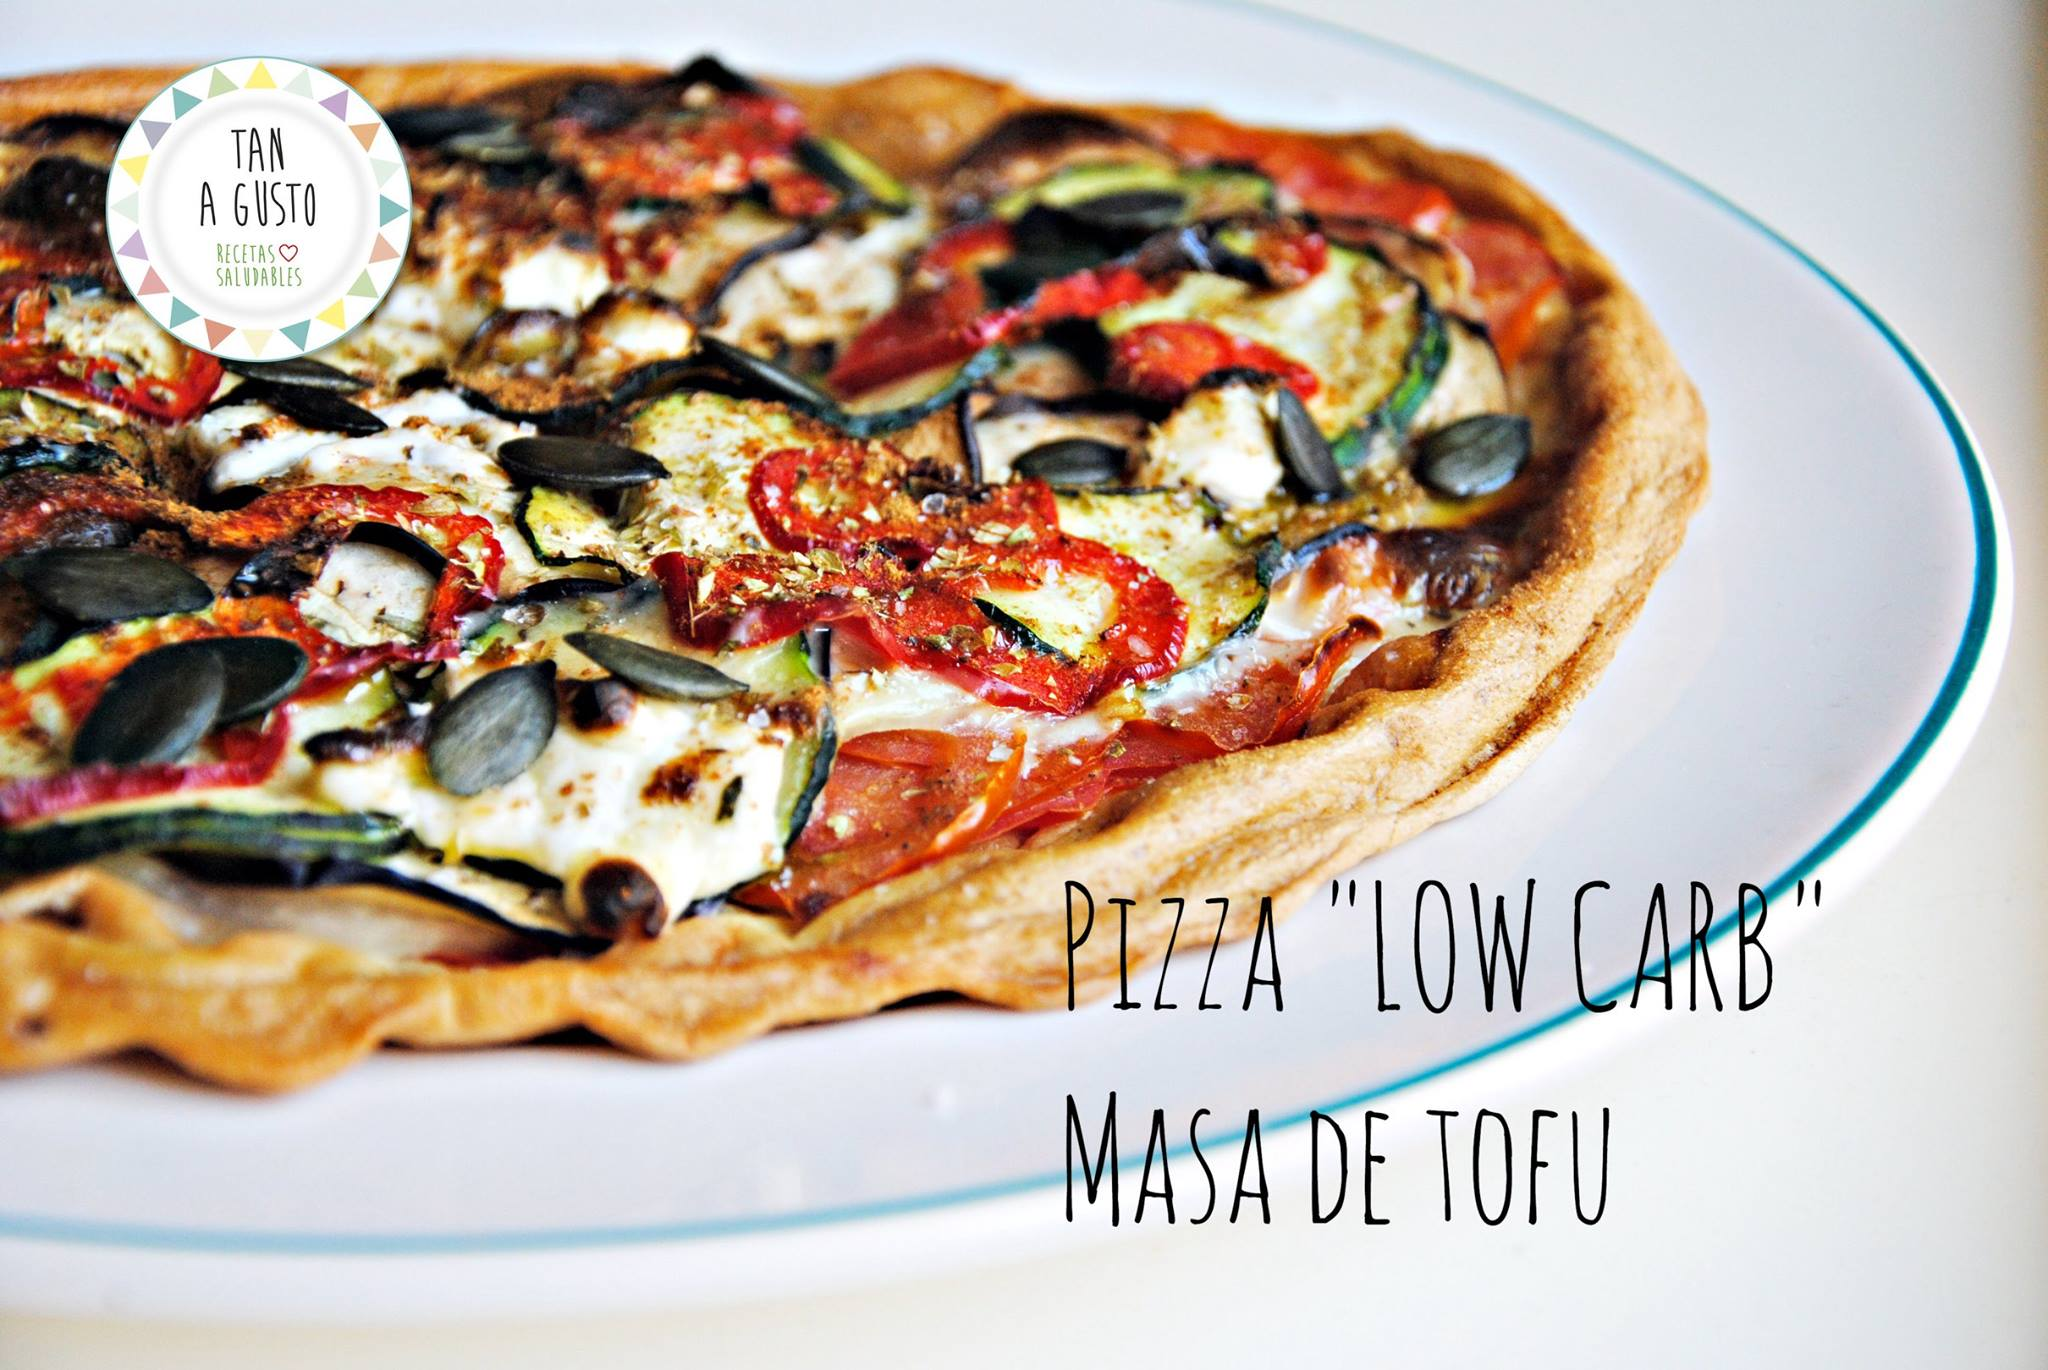 PIZZA LOW CARB, DE MASA DE TOFU.